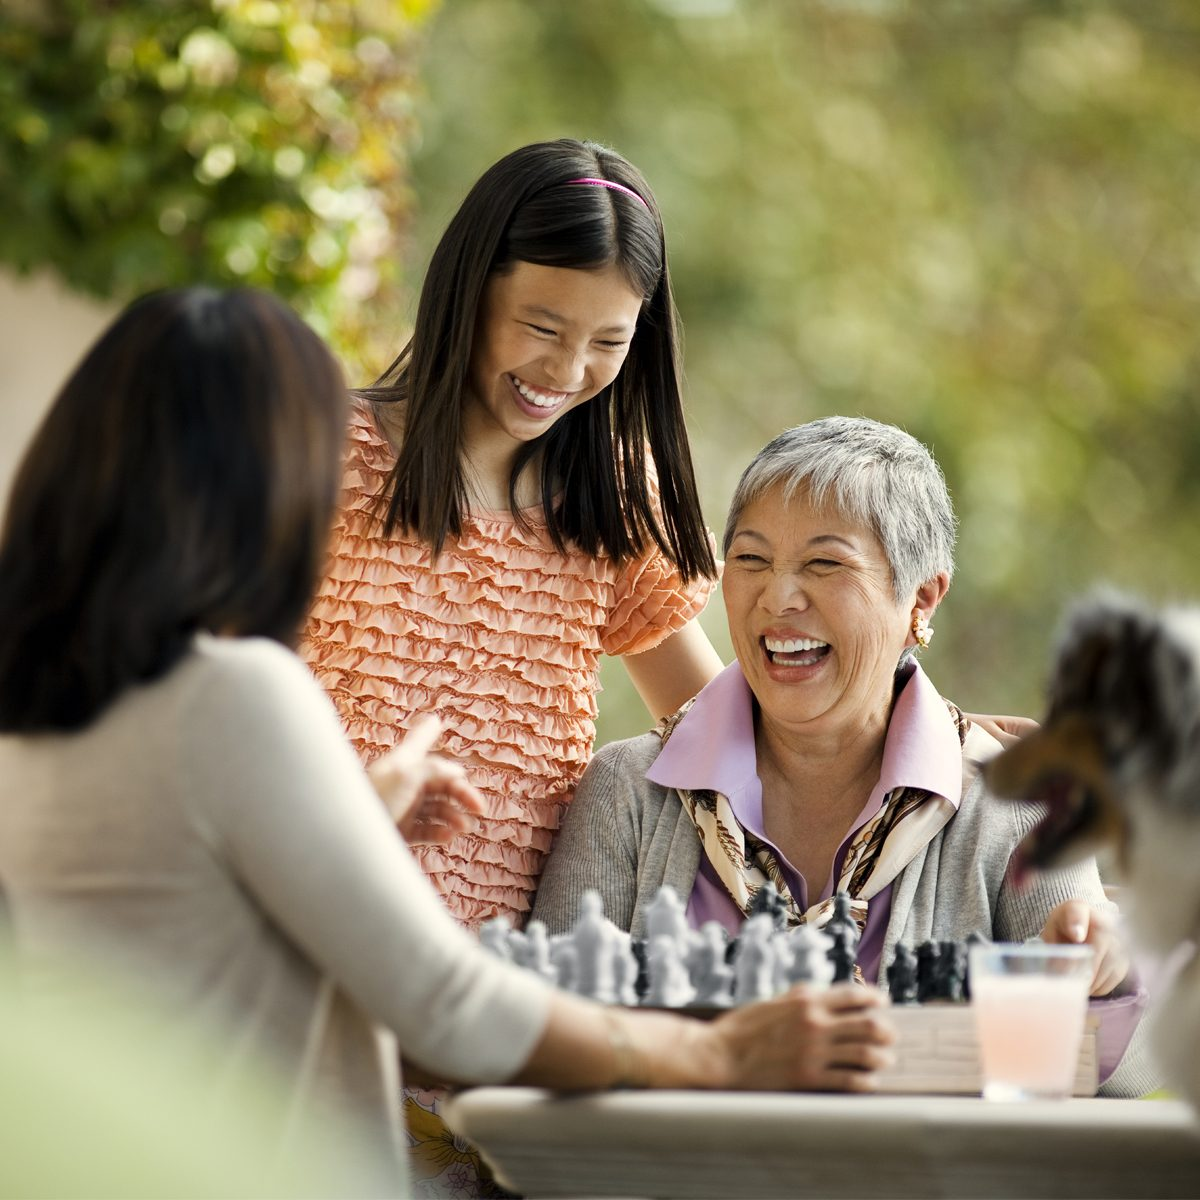 Senior woman enjoying an afternoon with family